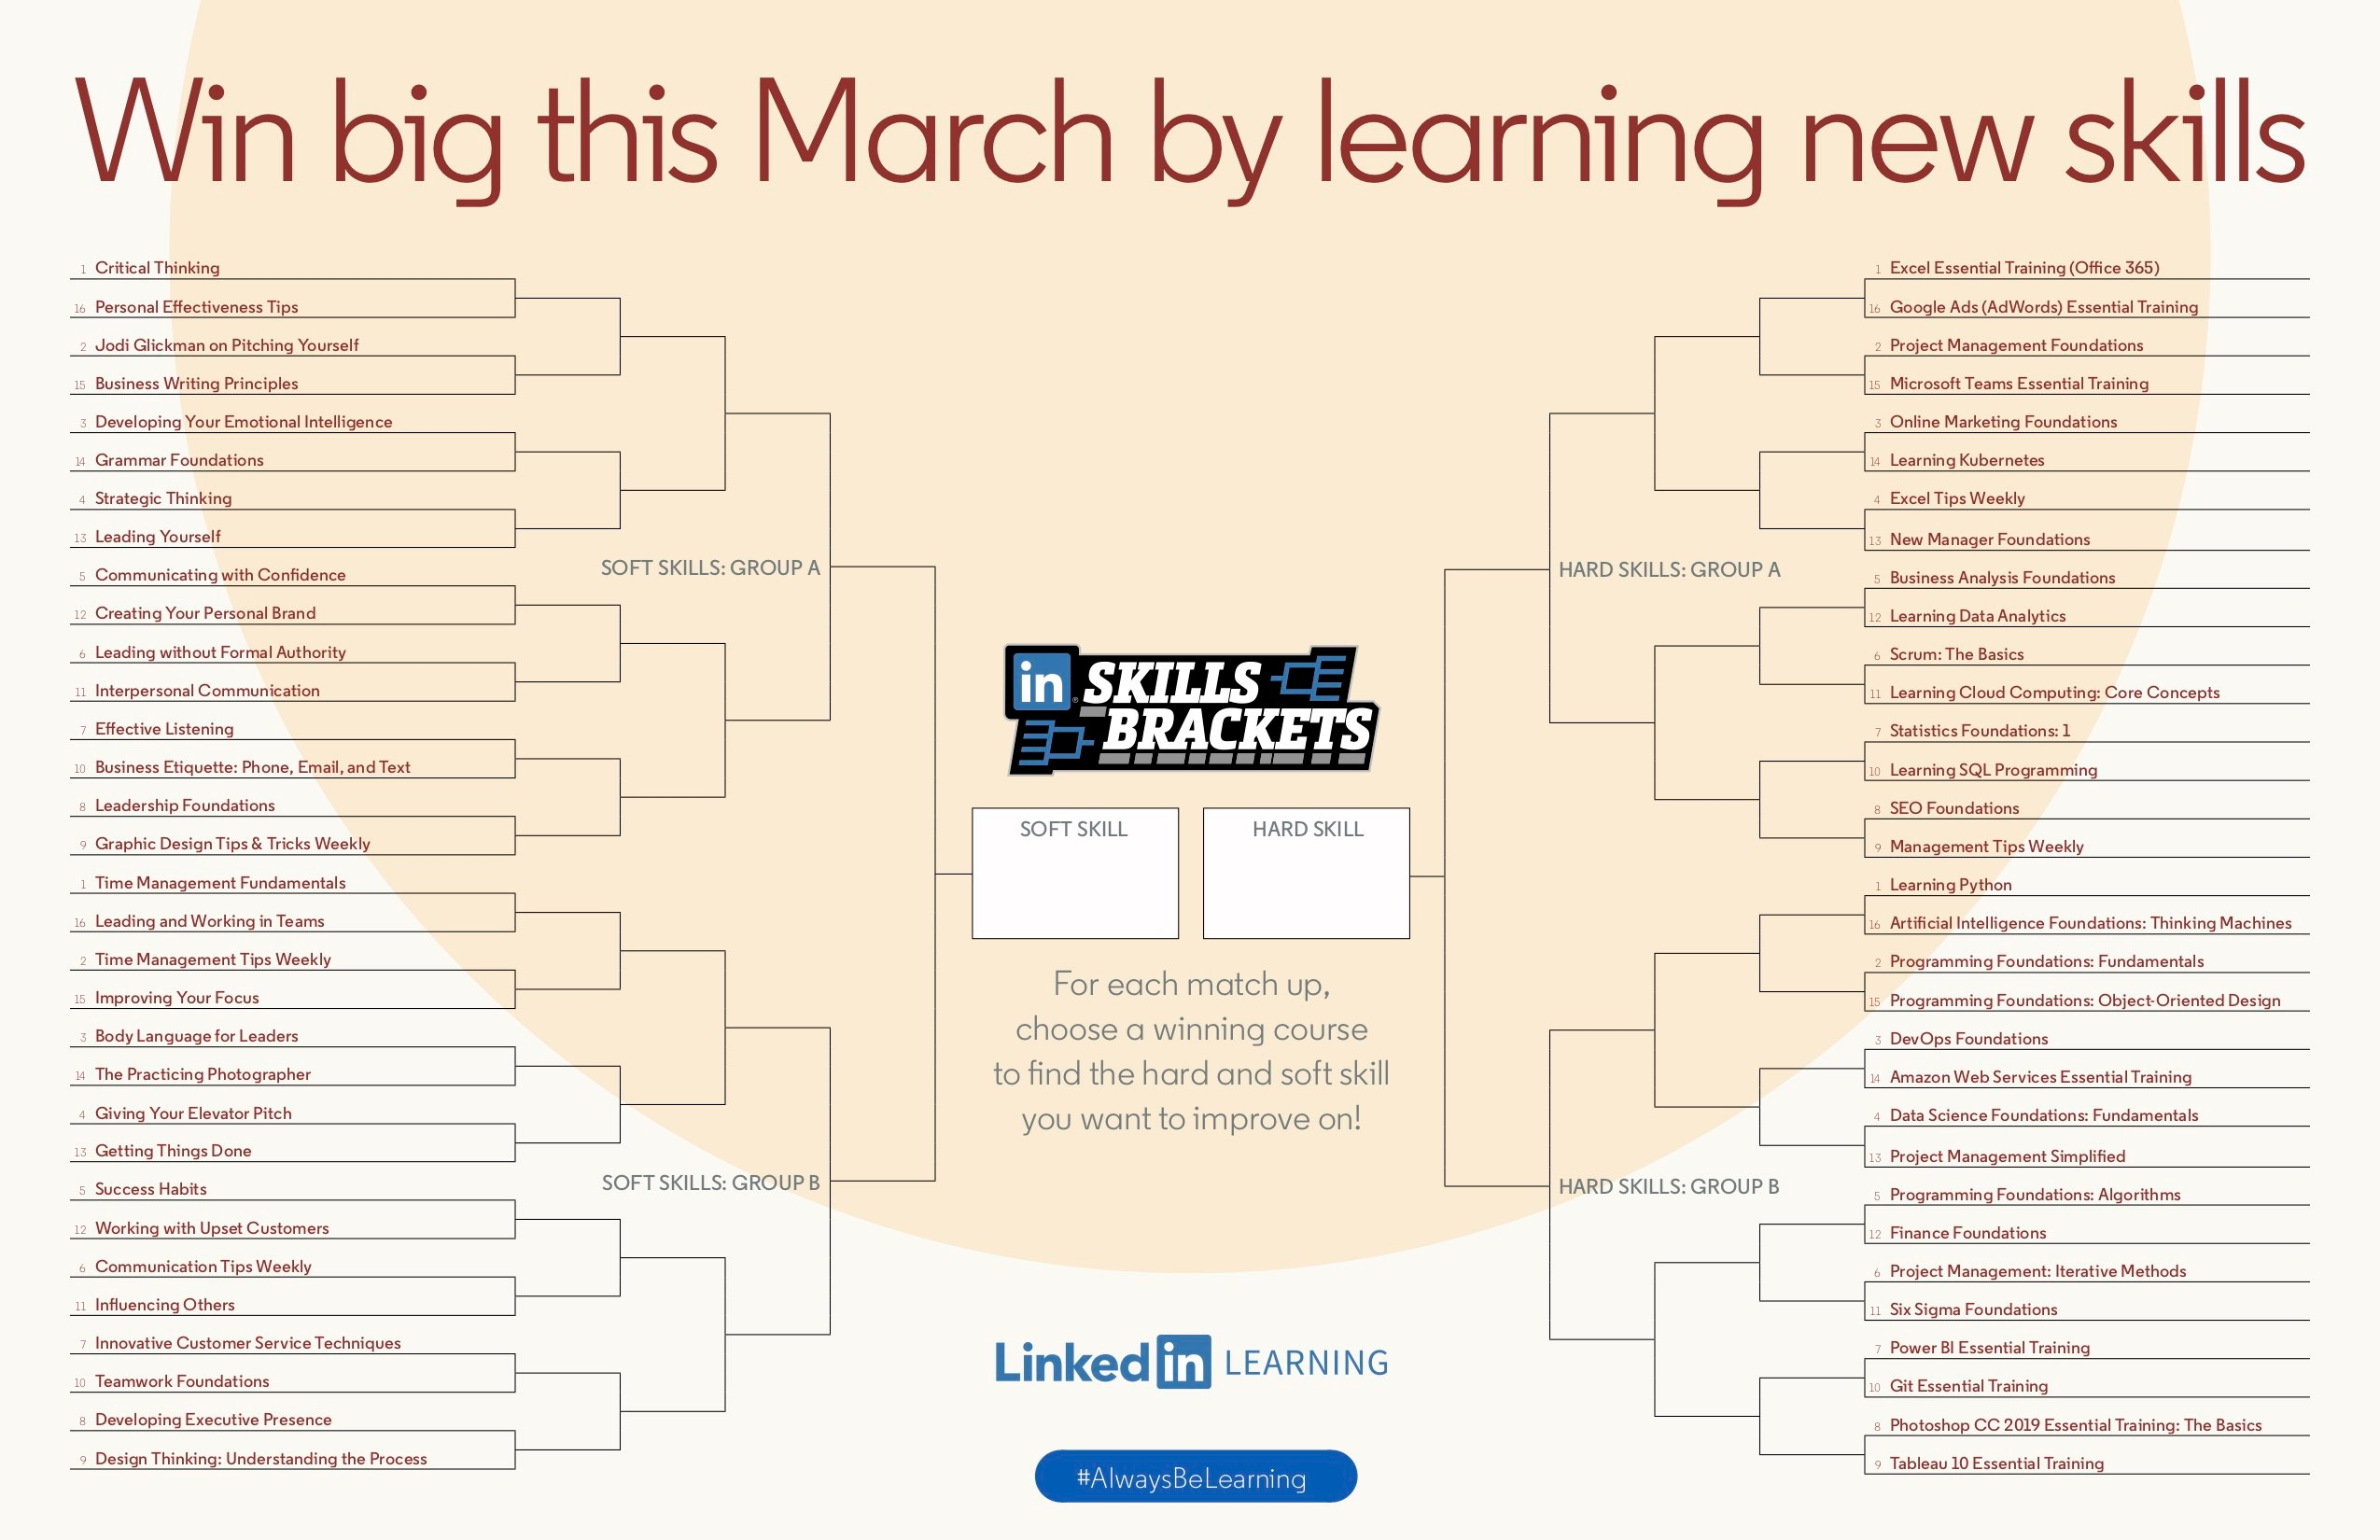 How to Make the Most Out of March Madness: The 2019 Skills